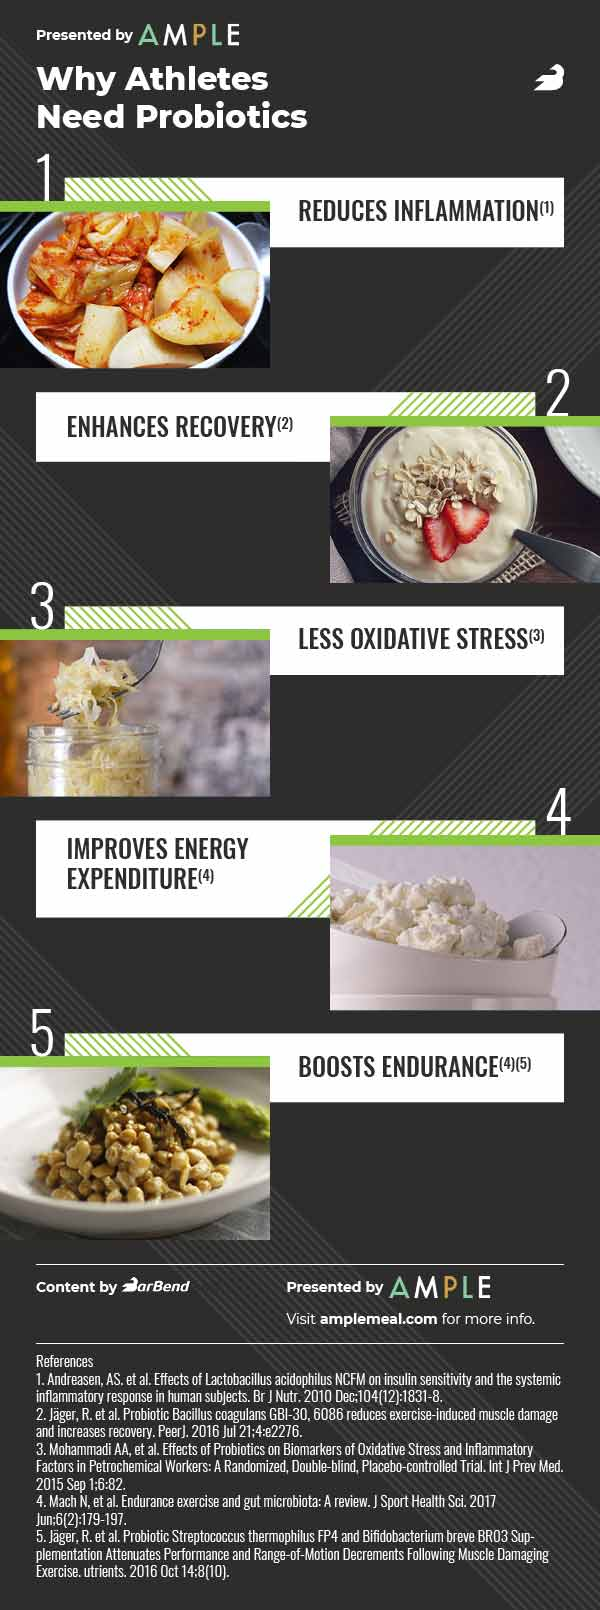 Why Athletes Need Probiotics